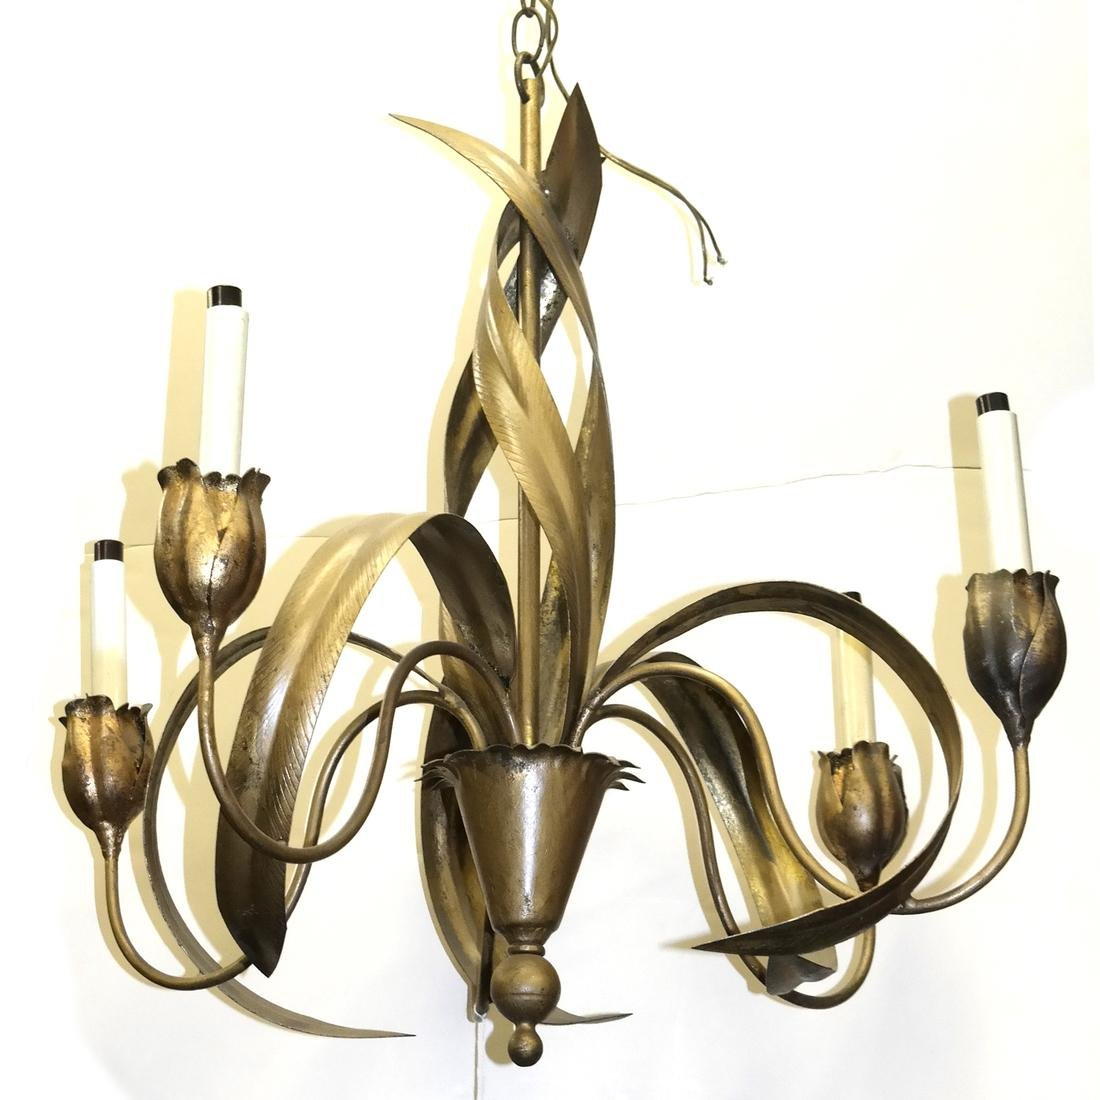 Tole Leaf Tulip-Form Chandelier